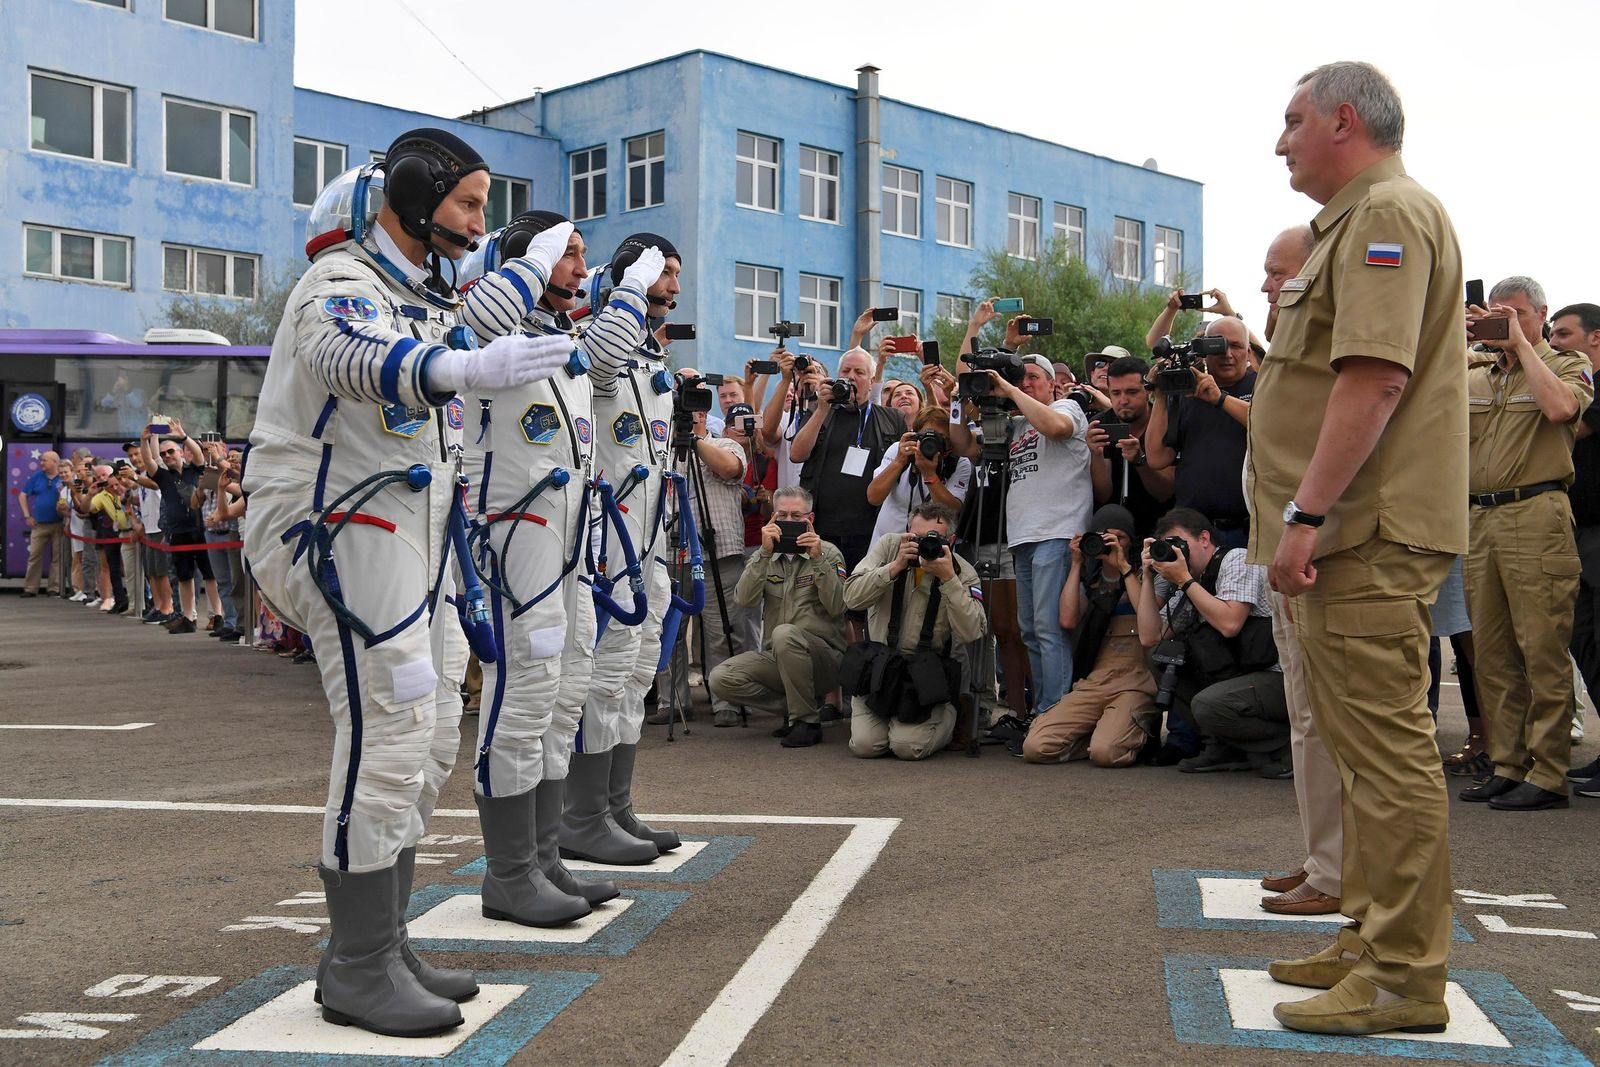 From left: U.S. astronaut Andrew Morgan, Russian cosmonaut Alexander Skvortsov and Italian astronaut Luca Parmitano, members of the main crew of the expedition to the International Space Station (ISS), report to head or Russian space agency Dmitry Rogozin prior the launch of Soyuz MS-13 space ship at the Russian leased Baikonur cosmodrome, Kazakhstan, Saturday, July 20, 2019. (AP Photo/Kirill Kudryavtsev, Pool)